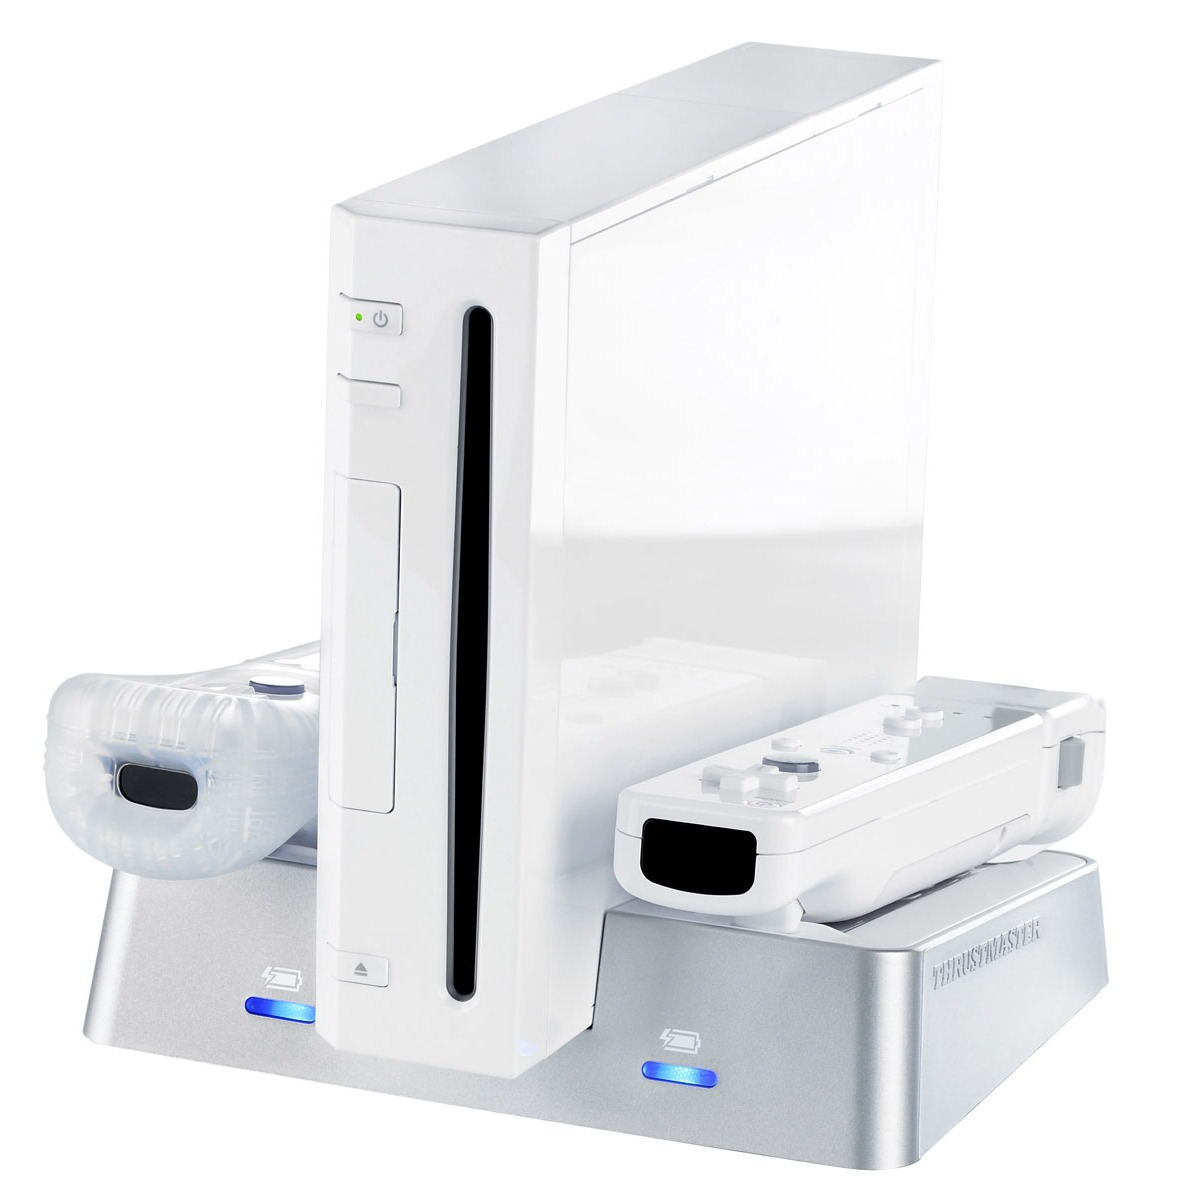 Accessoires Wii Thrustmaster T-Charger Stand Contactless Thrustmaster T-Charger Stand Contactless - Station de recharge à induction pour Wii (coloris blanc)